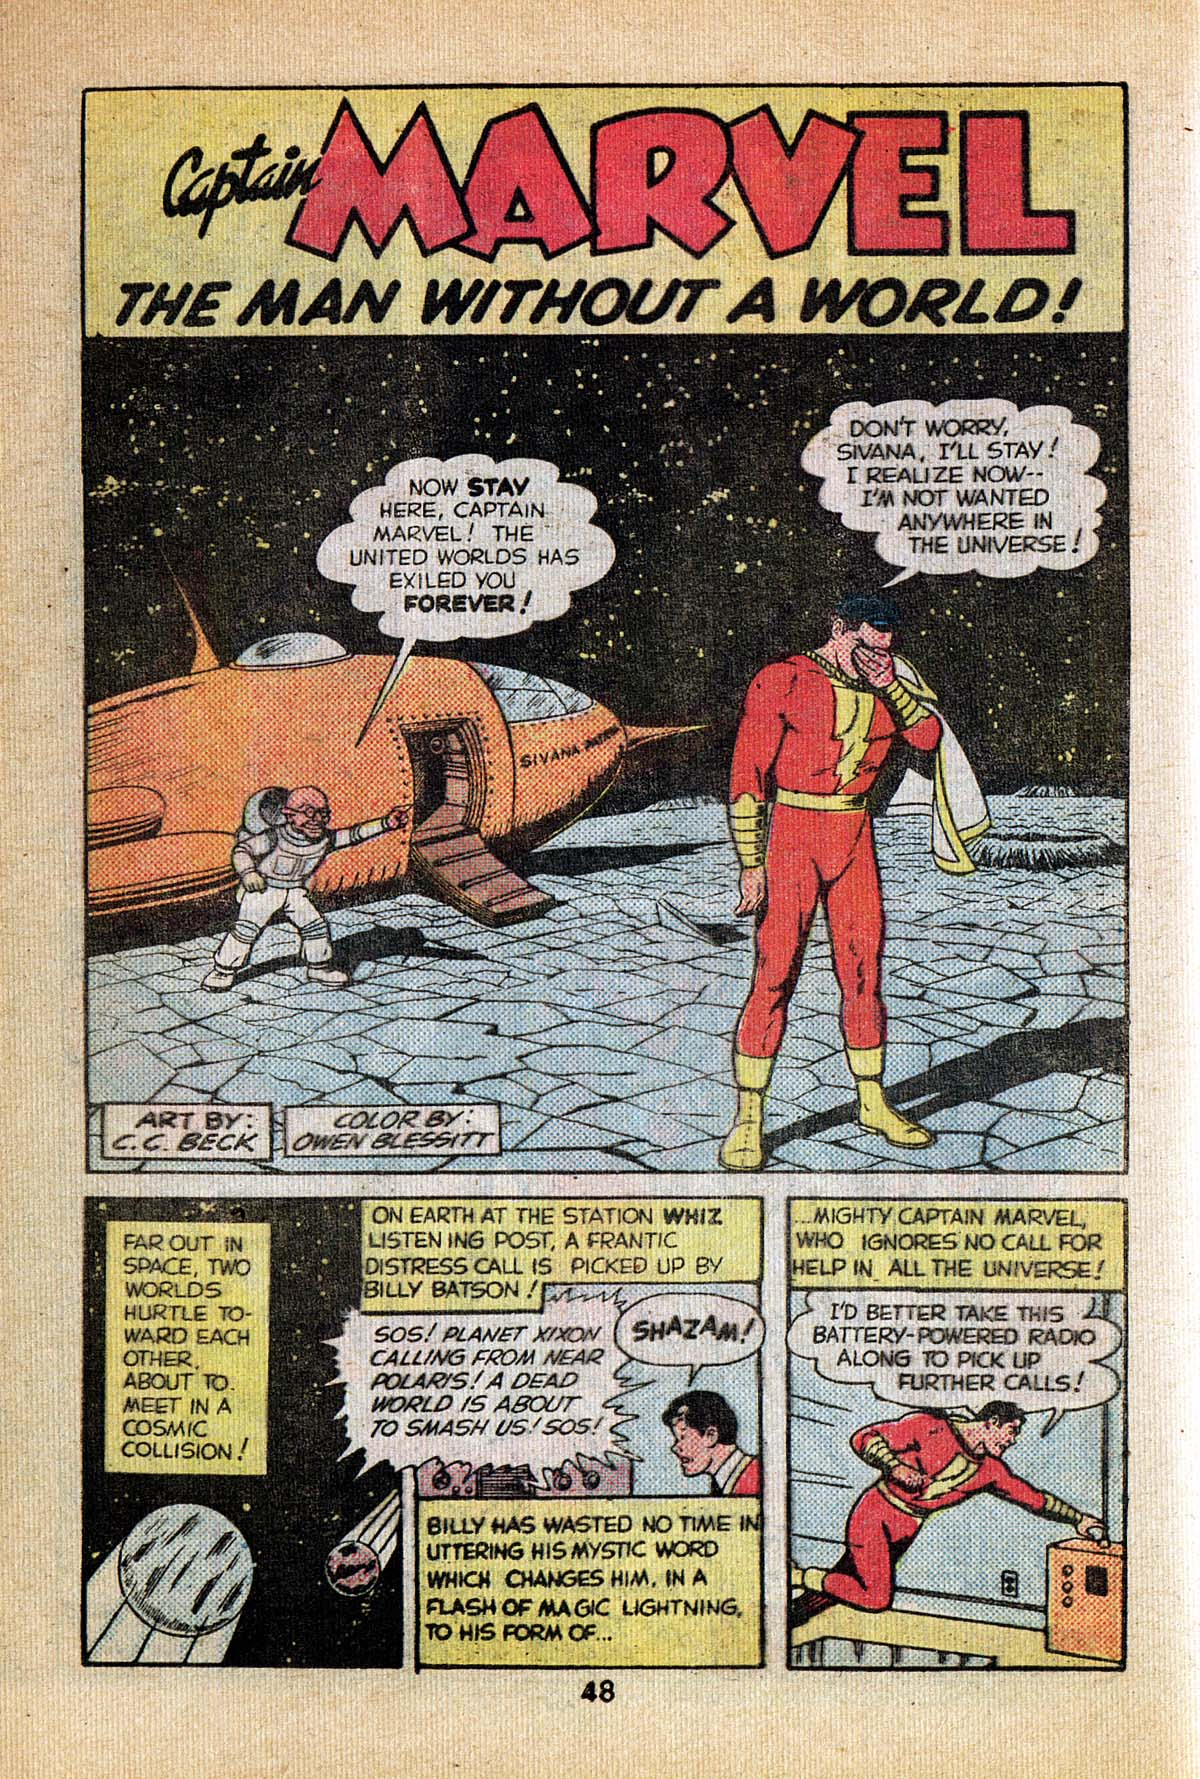 Read online Adventure Comics (1938) comic -  Issue #495 - 48